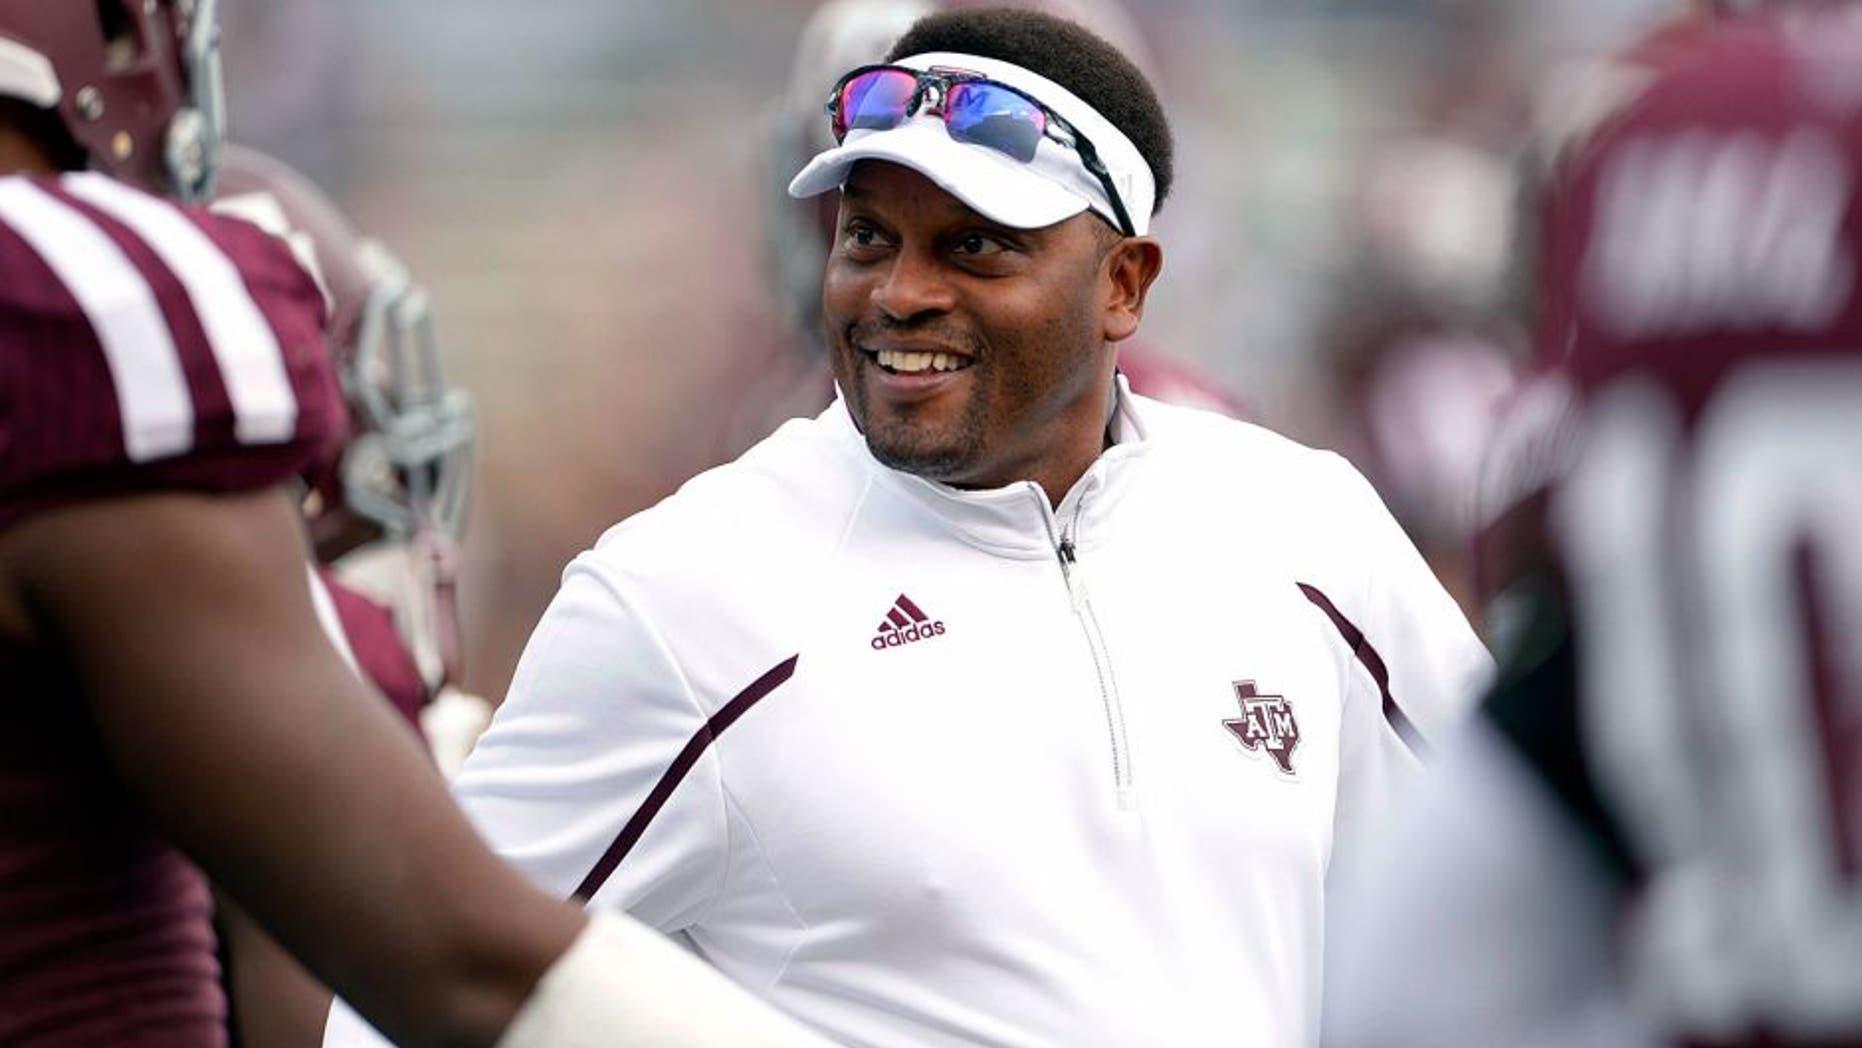 Nov 9, 2013; College Station, TX, USA; Texas A&M Aggies head coach Kevin Sumlin coaches before the game against the Mississippi State Bulldogs at Kyle Field. Mandatory Credit: Thomas Campbell-USA TODAY Sports